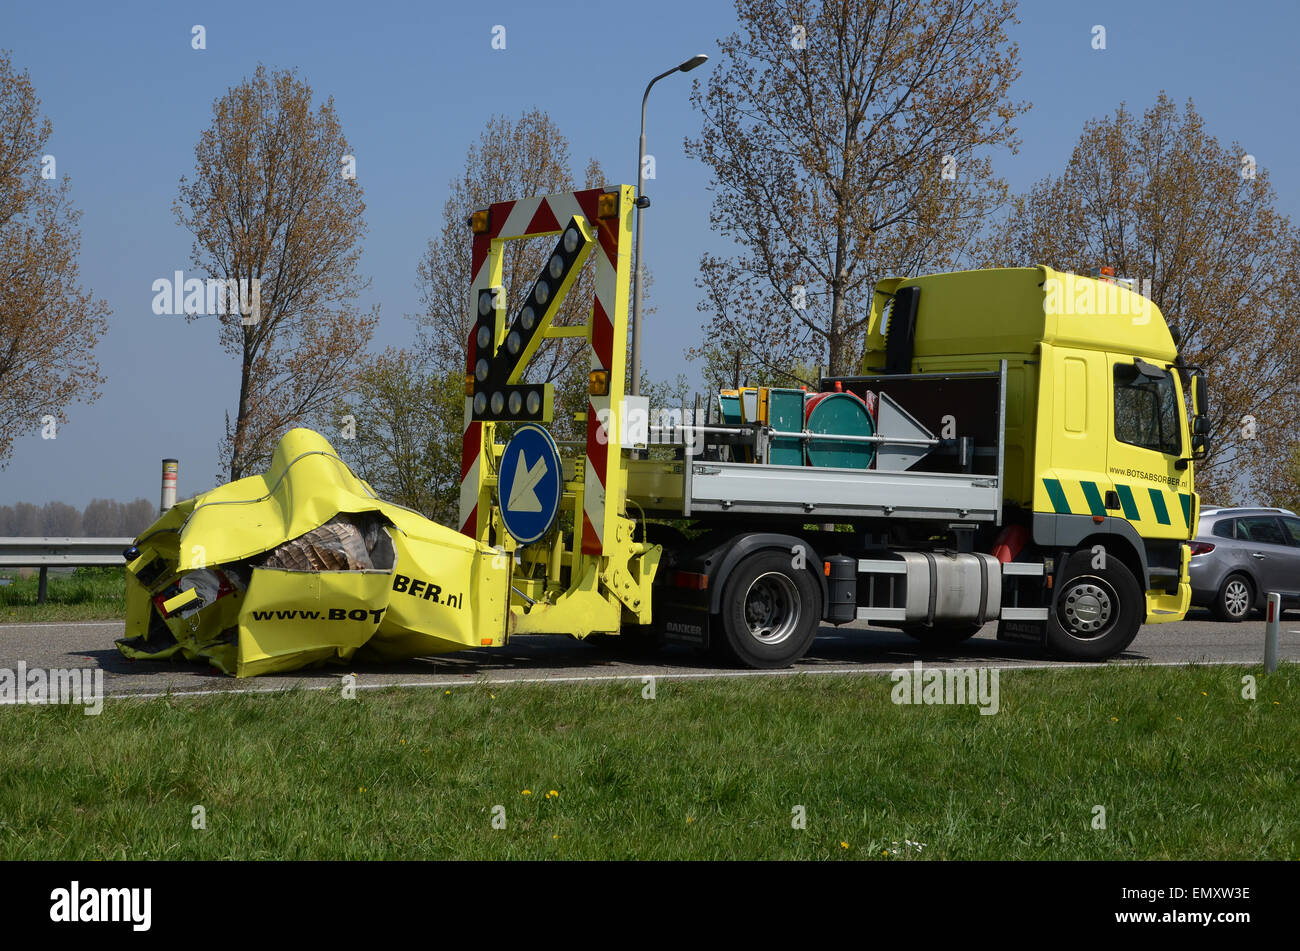 impact protection vehicle for roadworks after collision - Stock Image